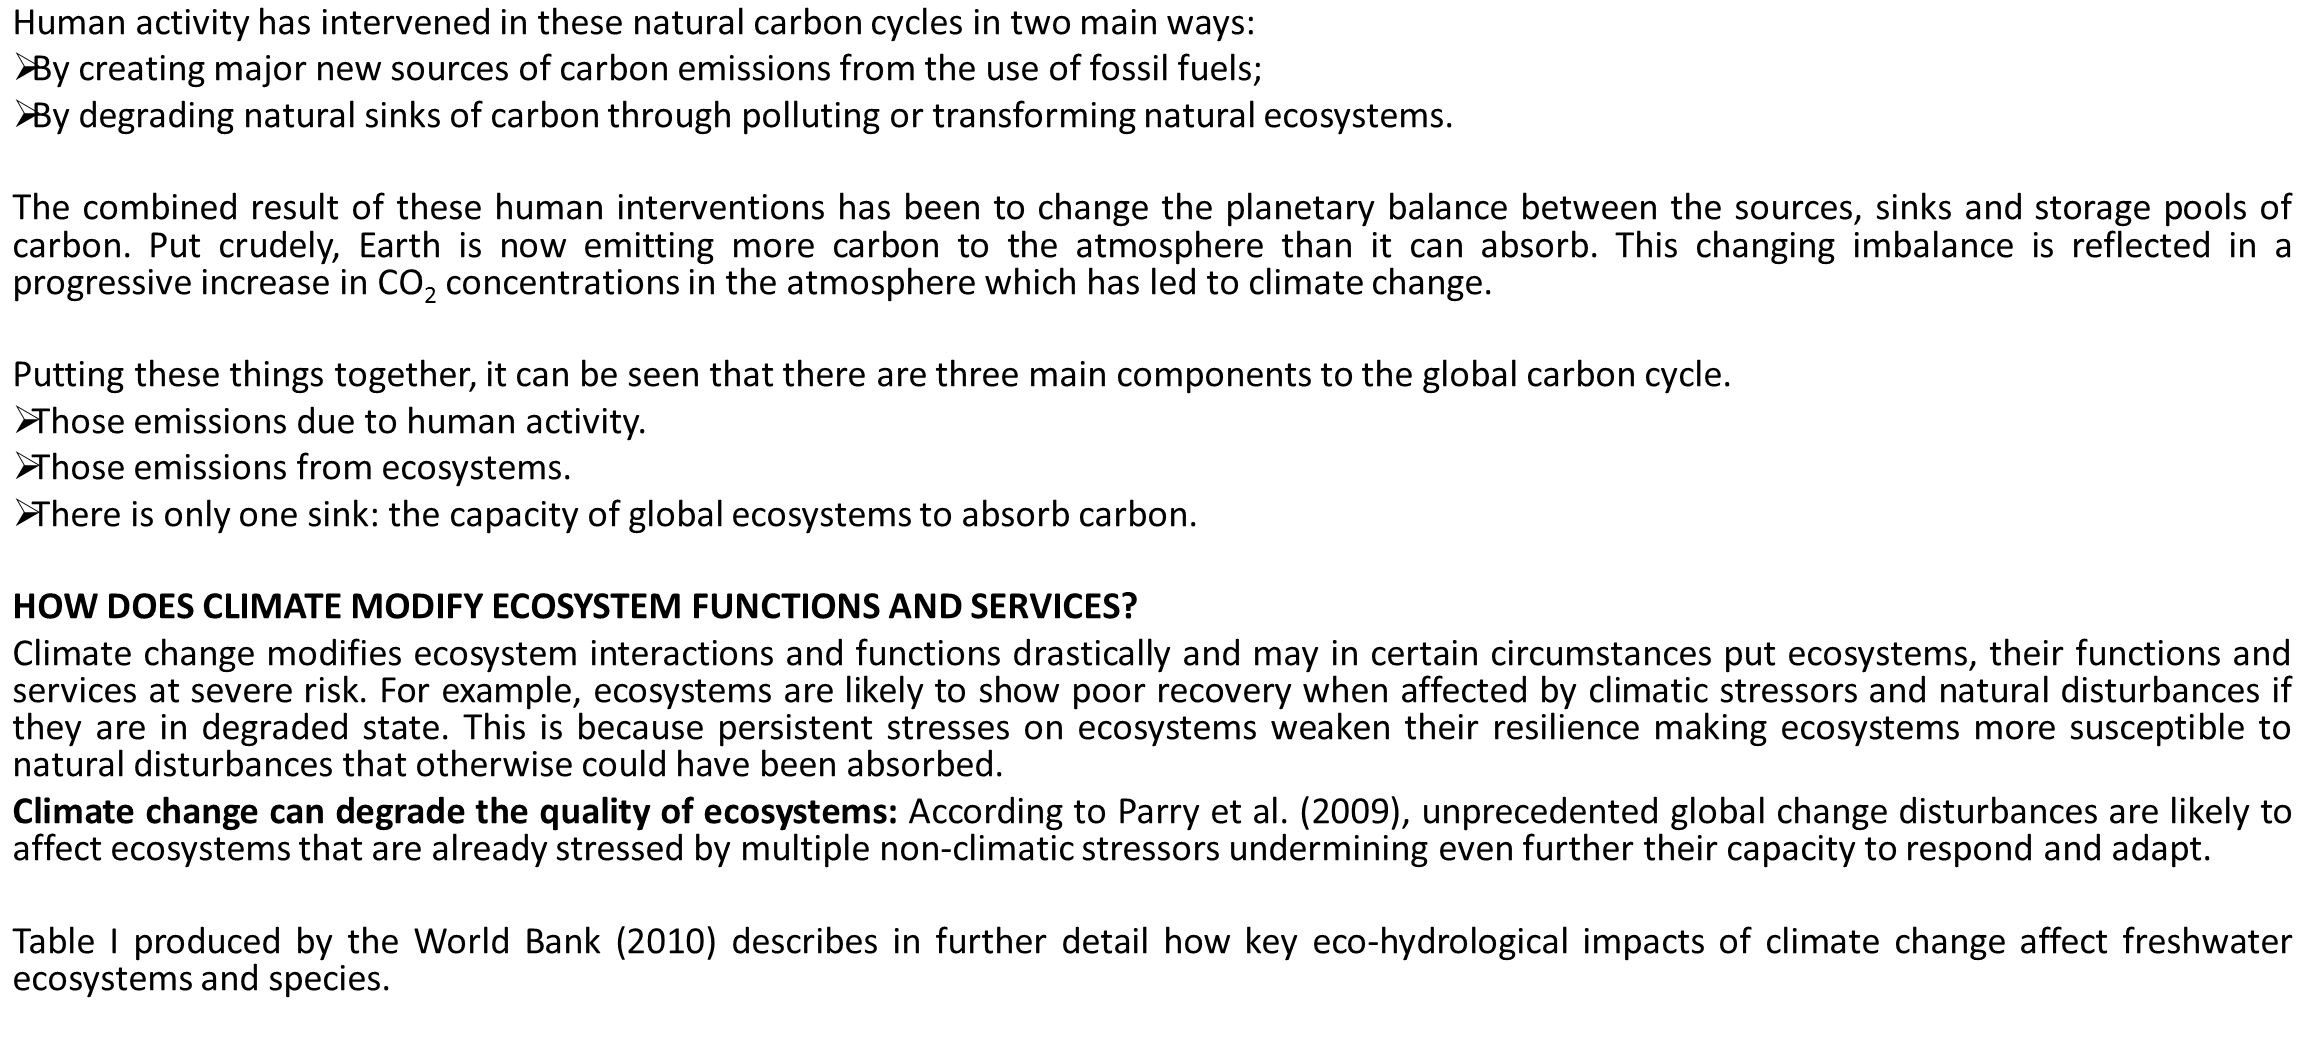 Human activity has intervened in these natural carbon cycles in two main ways: